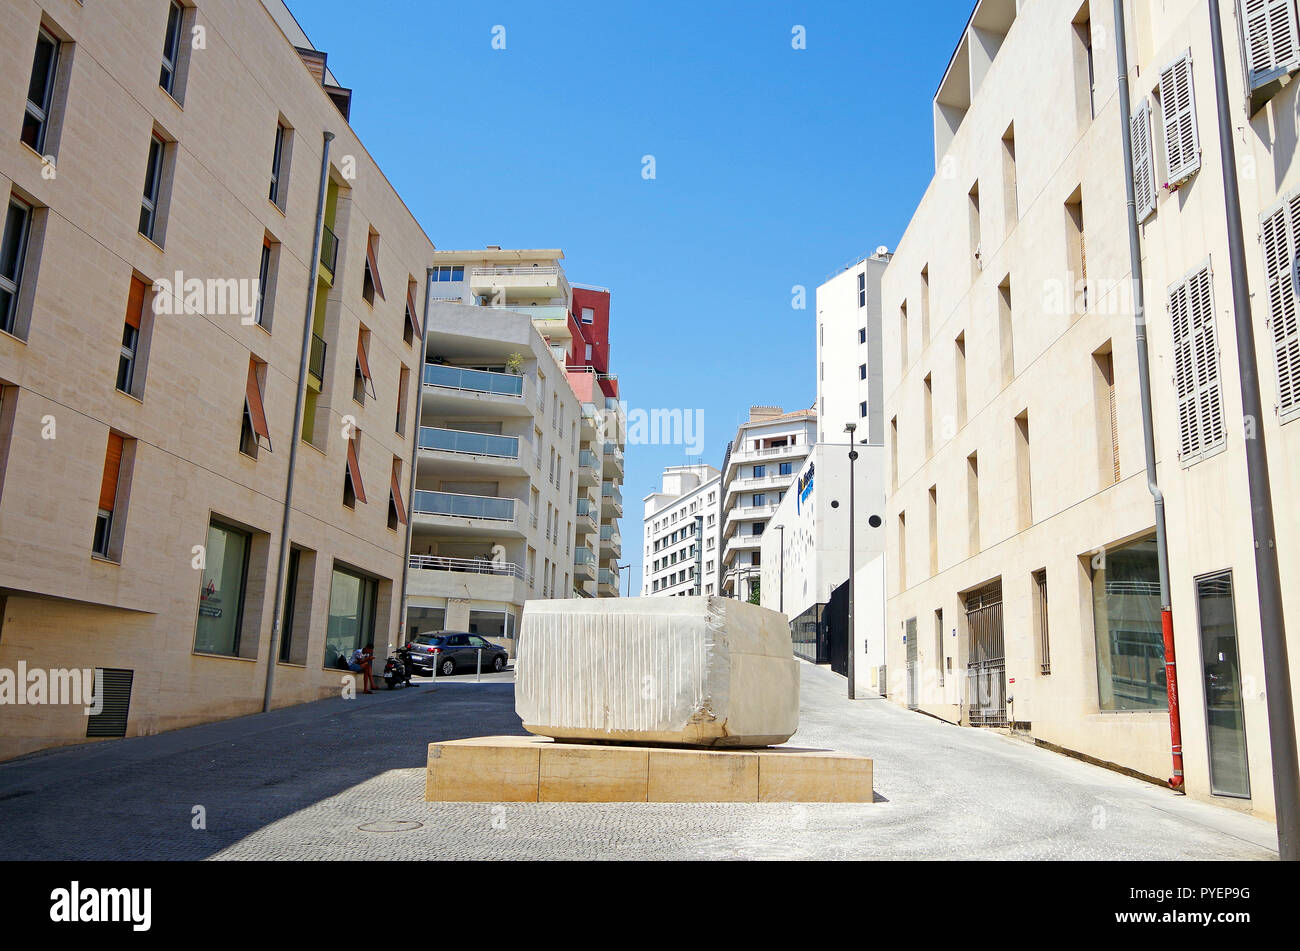 Marseille, small-scale housing development in the St Charles quarter, built on a human scale, and to suit the Mediterranean climate. - Stock Image